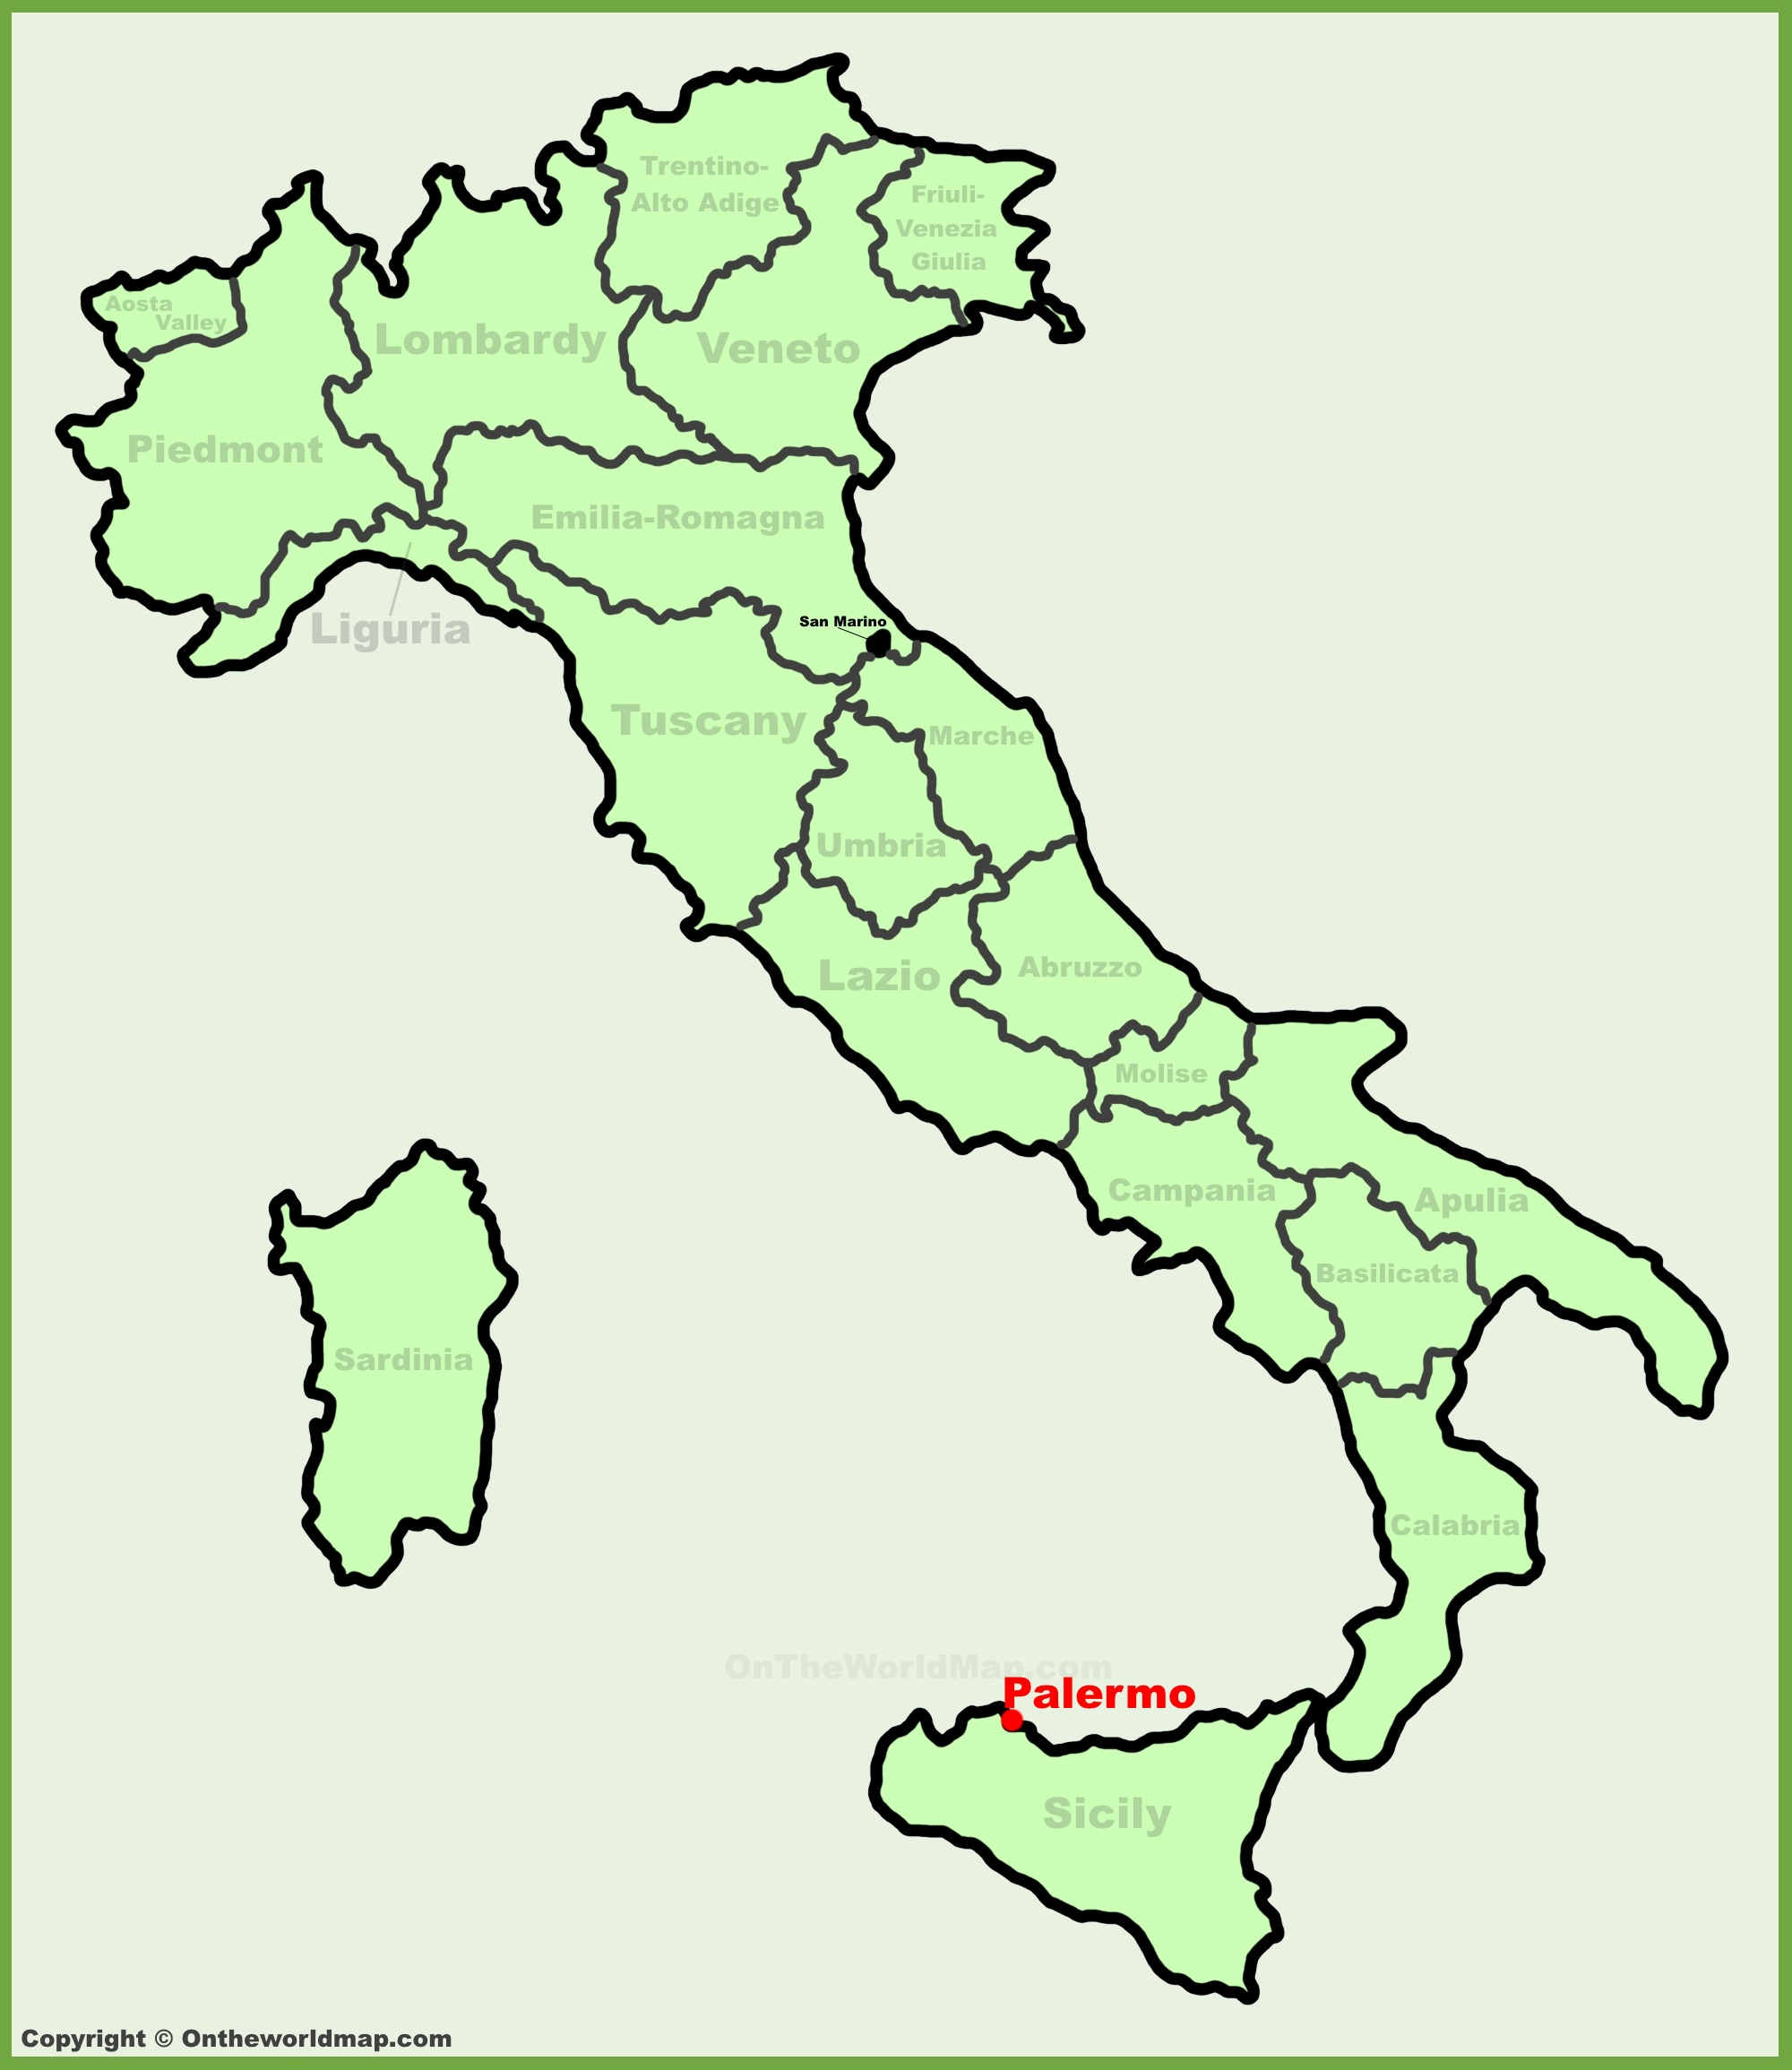 Palermo Location On The Italy Map